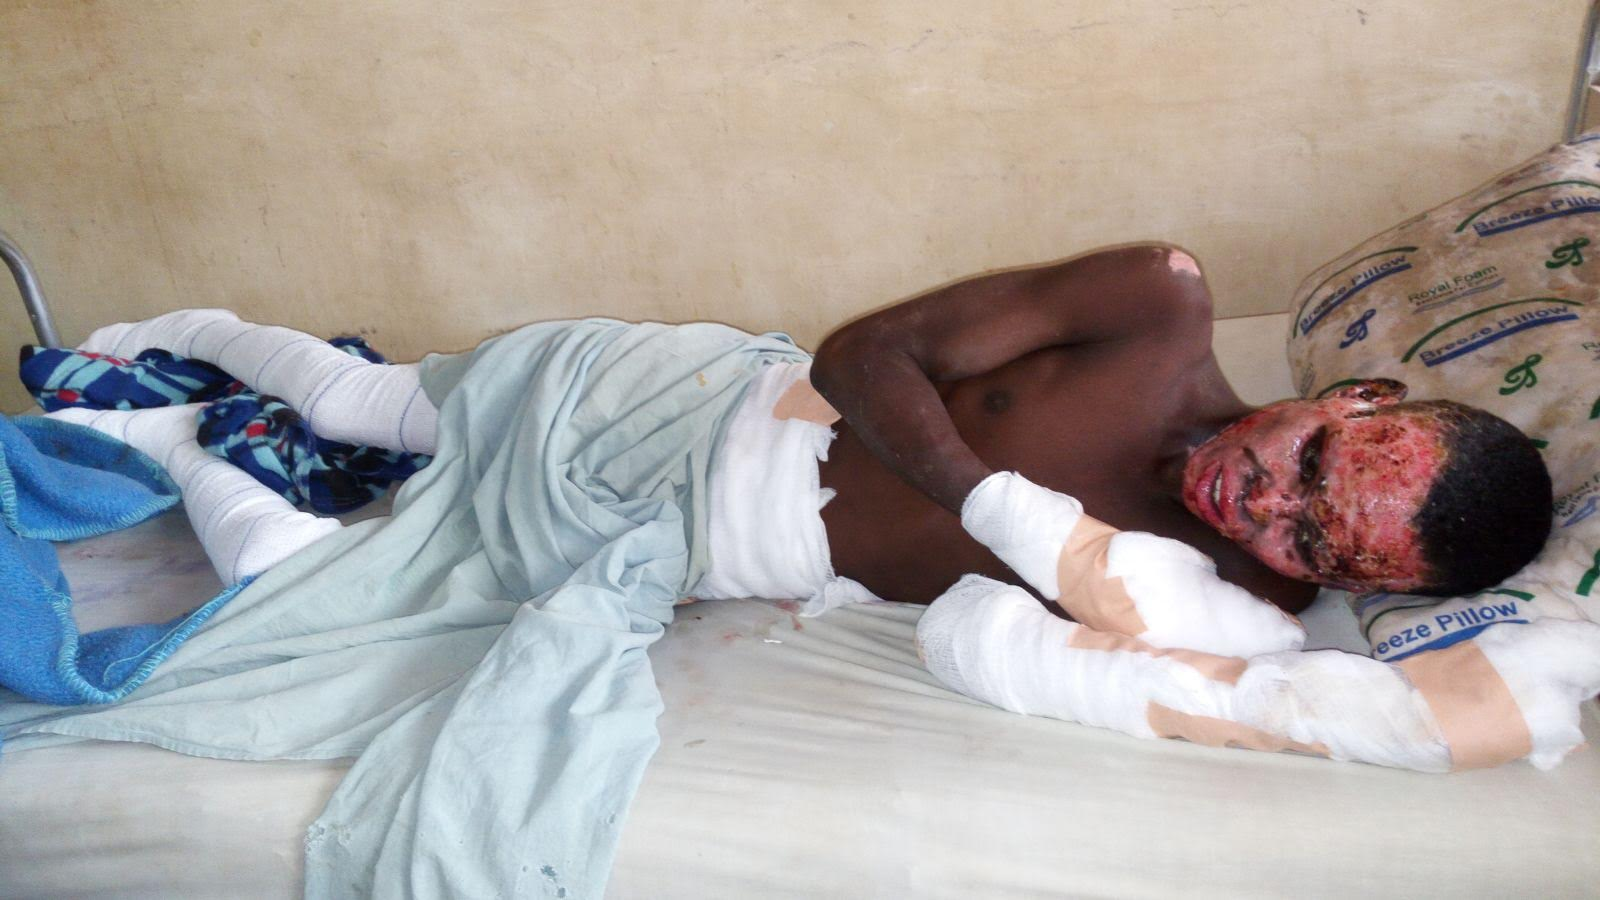 Burned victims of Zaria military pogrom c/o Dr Brimah